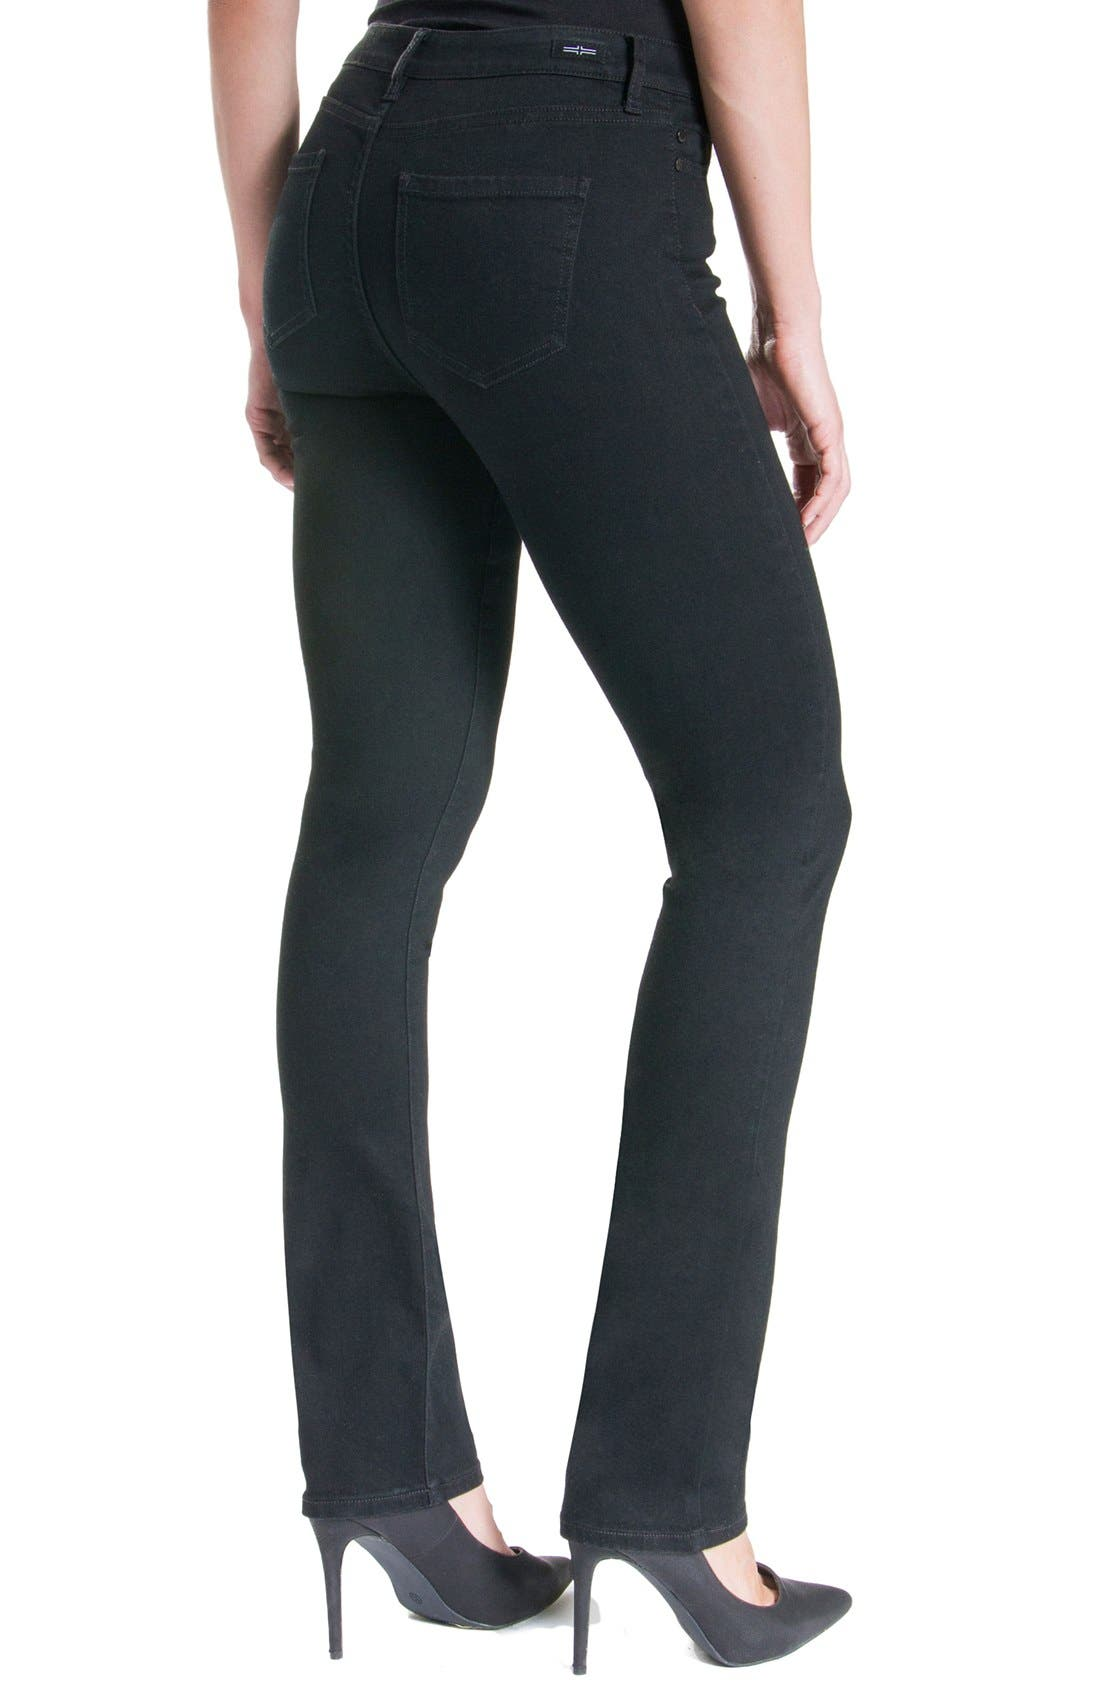 Sadie Mid Rise Stretch Straight Jeans,                             Alternate thumbnail 6, color,                             BLACK RINSE